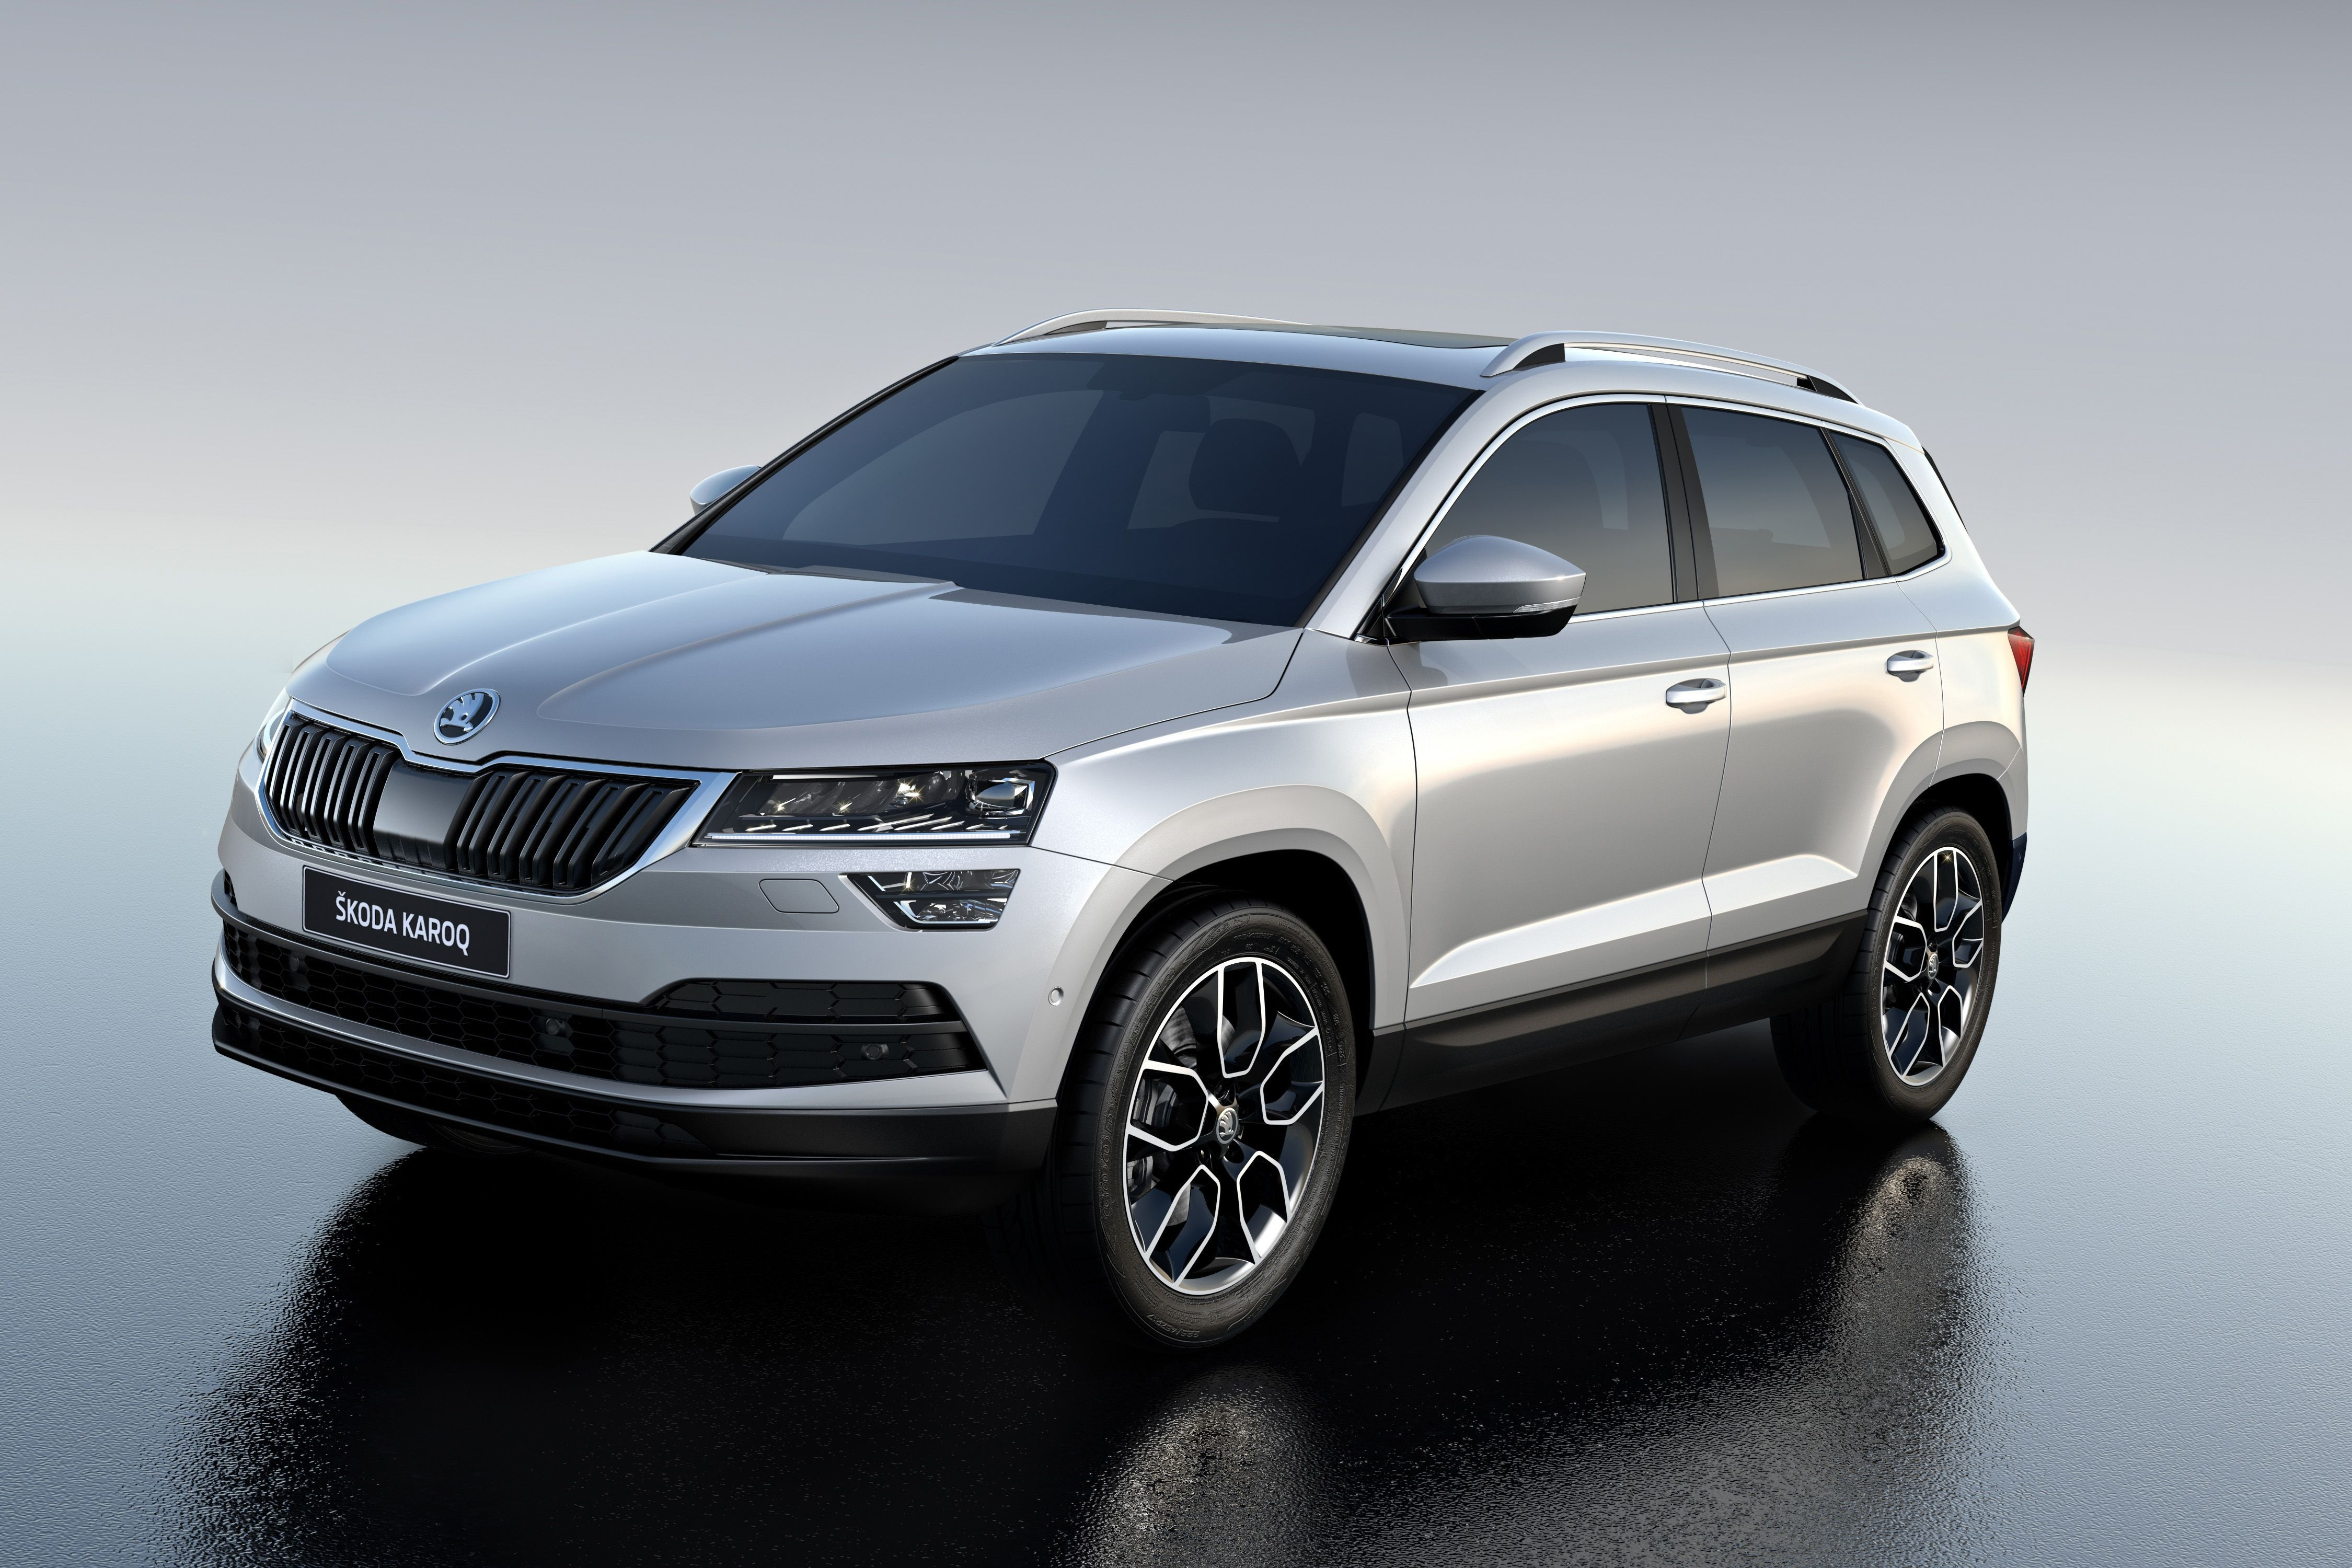 63 The Best 2020 Skoda Snowman Full Preview Performance